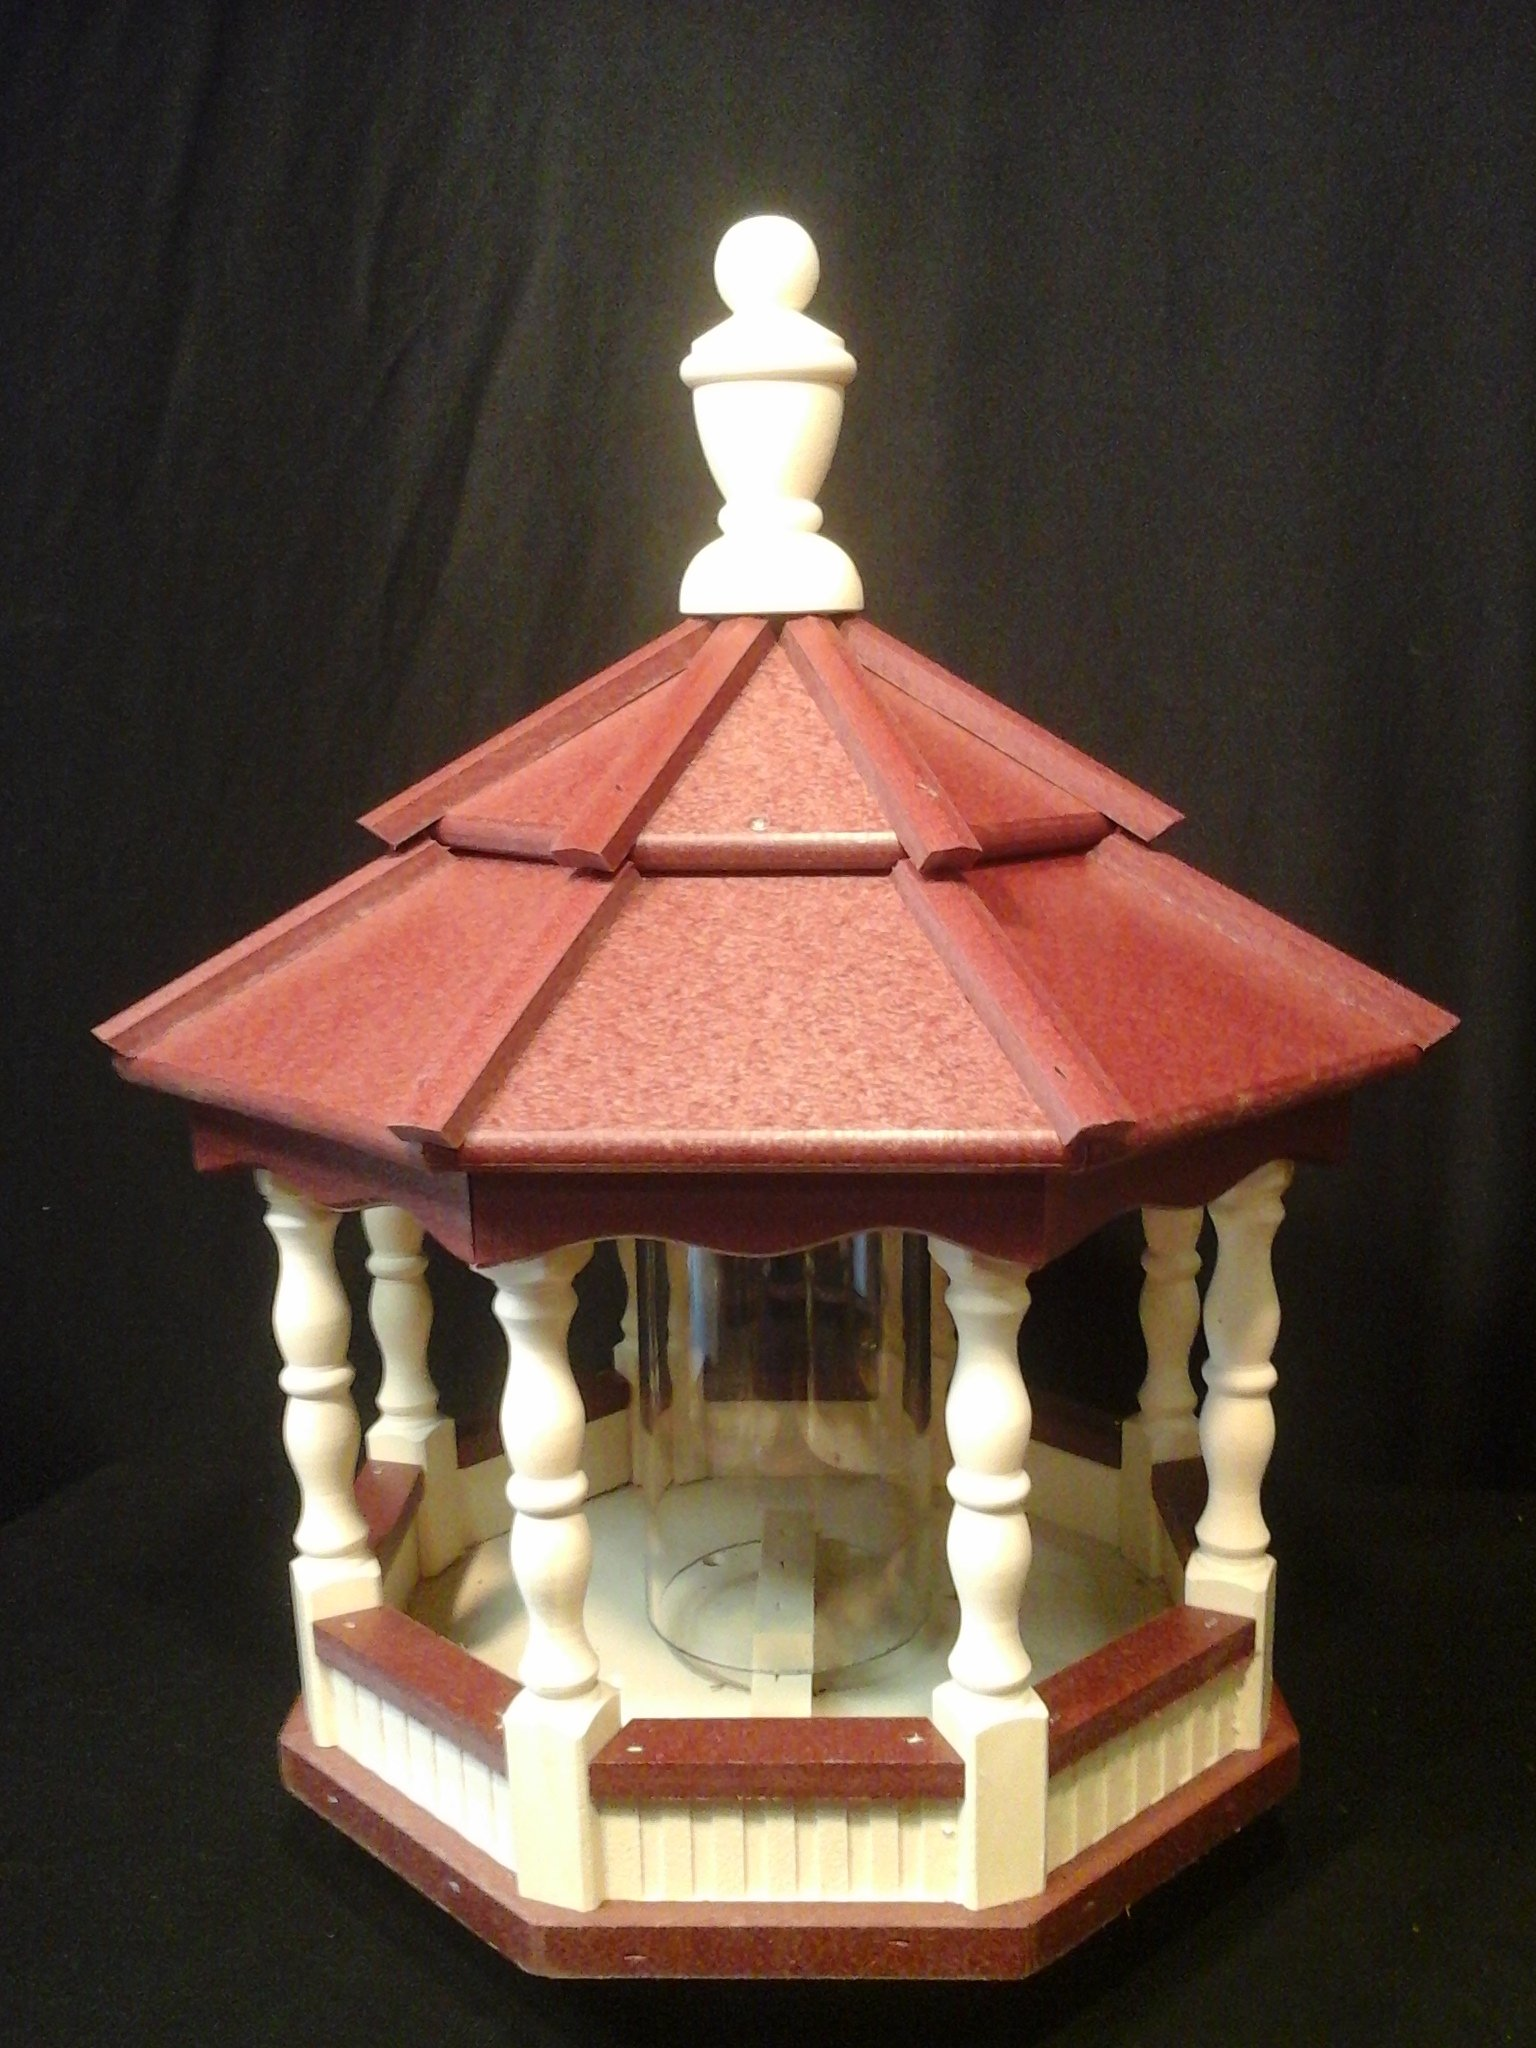 Poly Bird Feeder Amish Gazebo Handcrafted Homemade Ivory & Red Roof by Amish Crafted